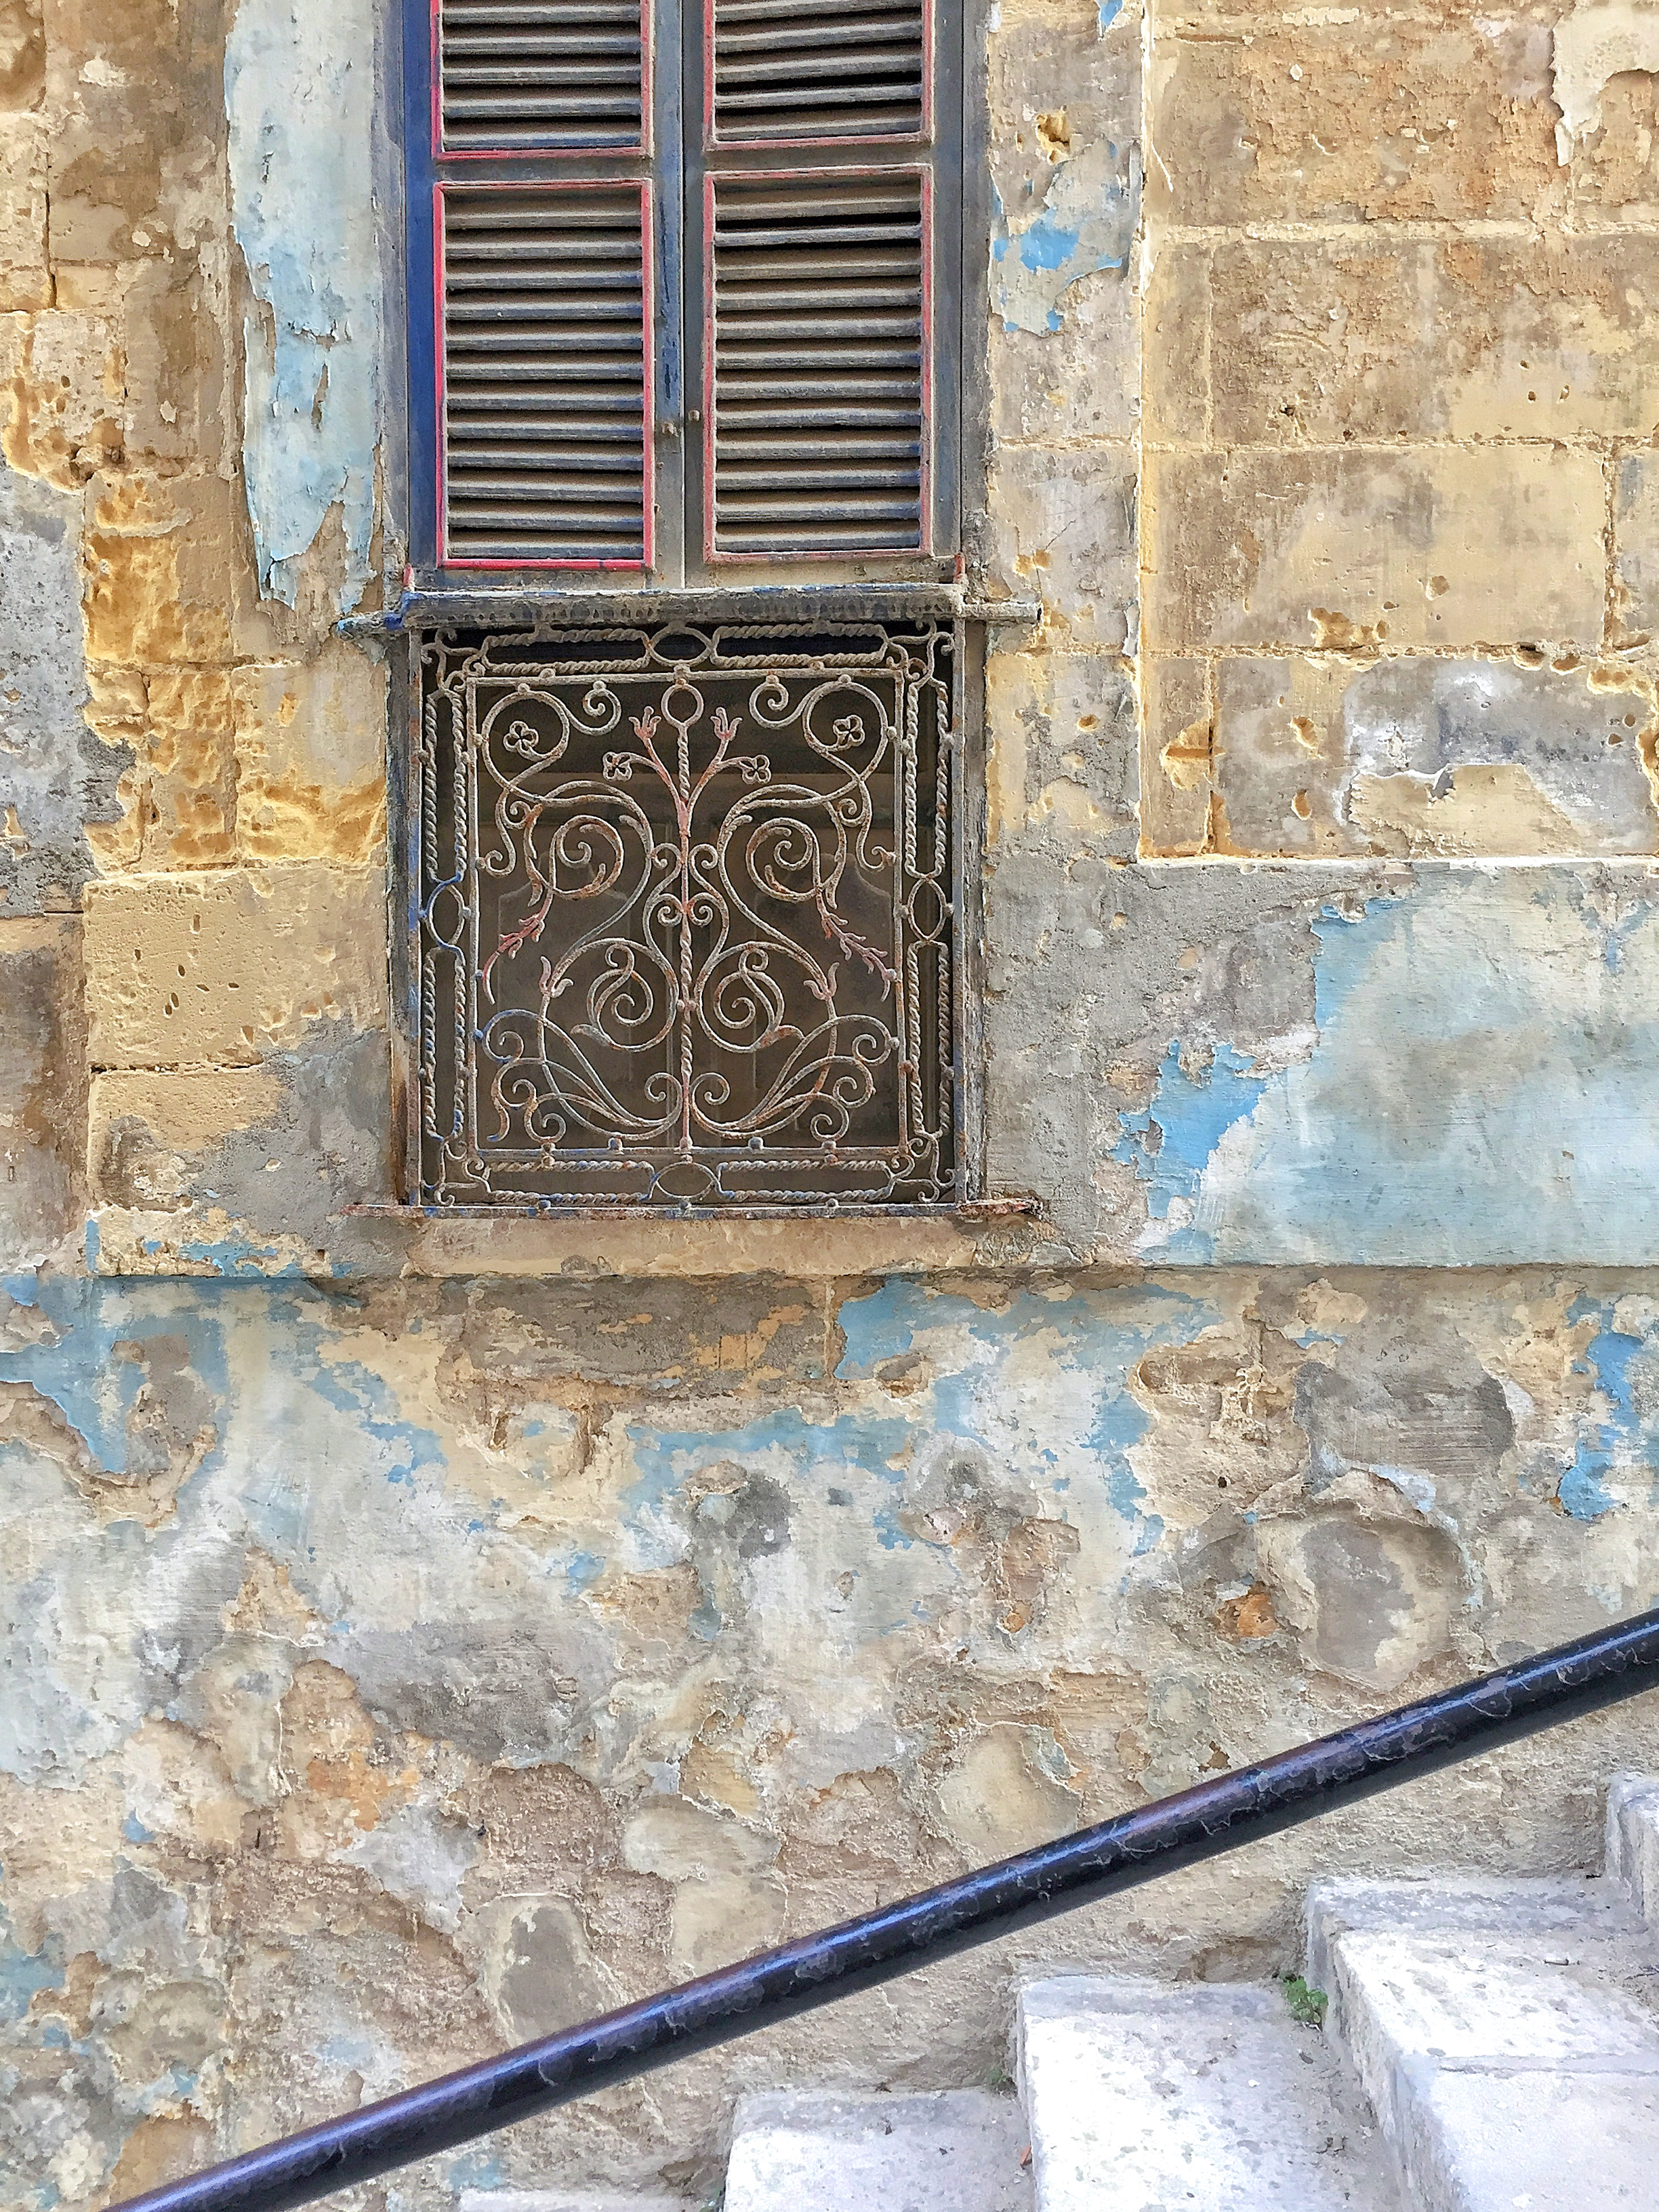 Maltese window   Senglea   - Thinking About Appreciation For Quality In Malta   Malta, Europe   DoLessGetMoreDone.com   - Travel Documentary Photography - search for Liveability   Sustainability